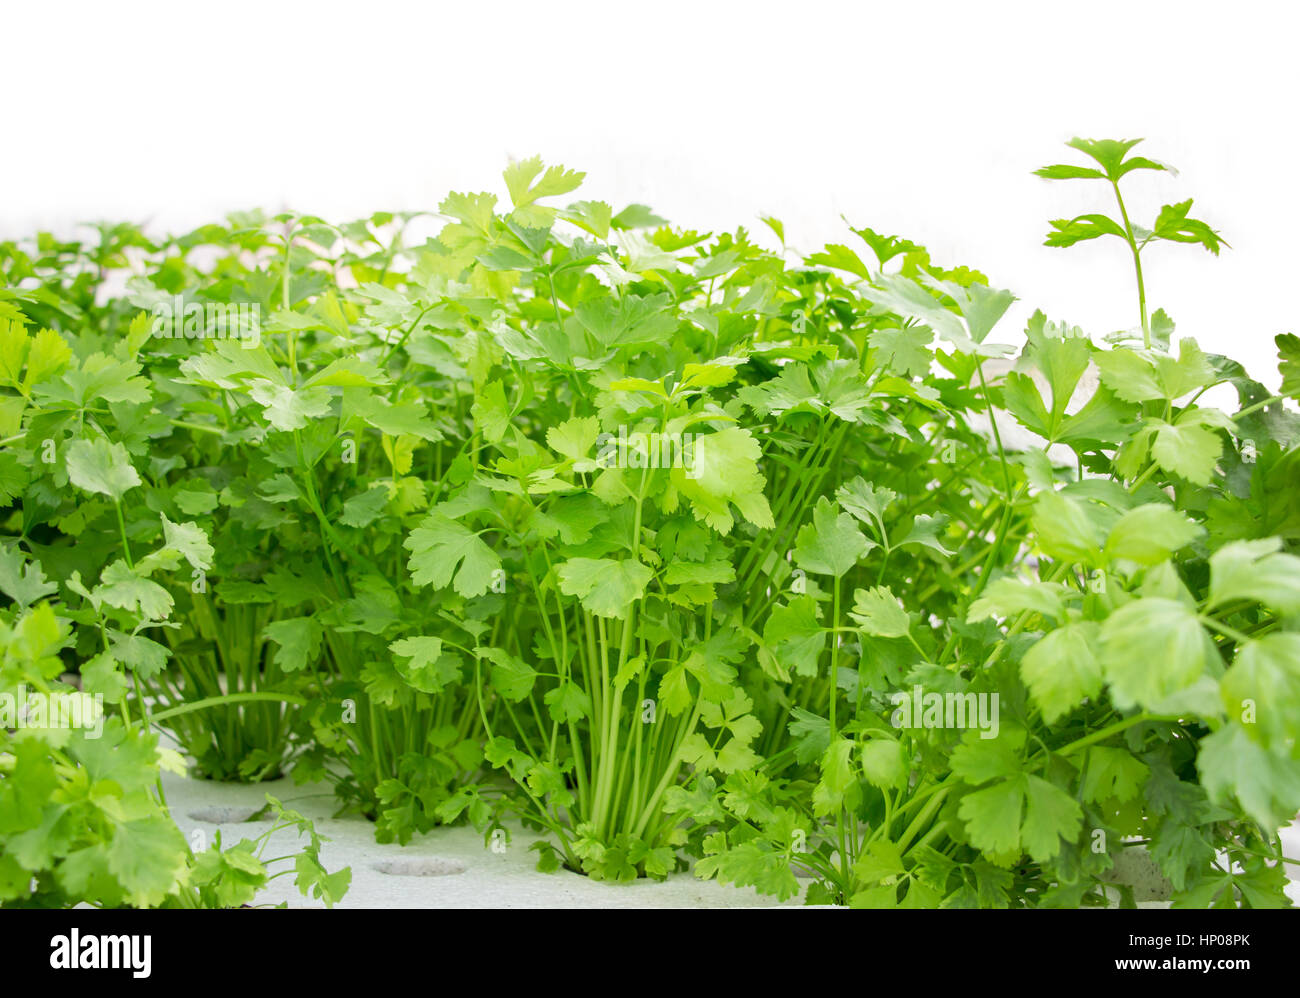 Hydroponic Commercial Farm High Resolution Stock Photography And Images Alamy